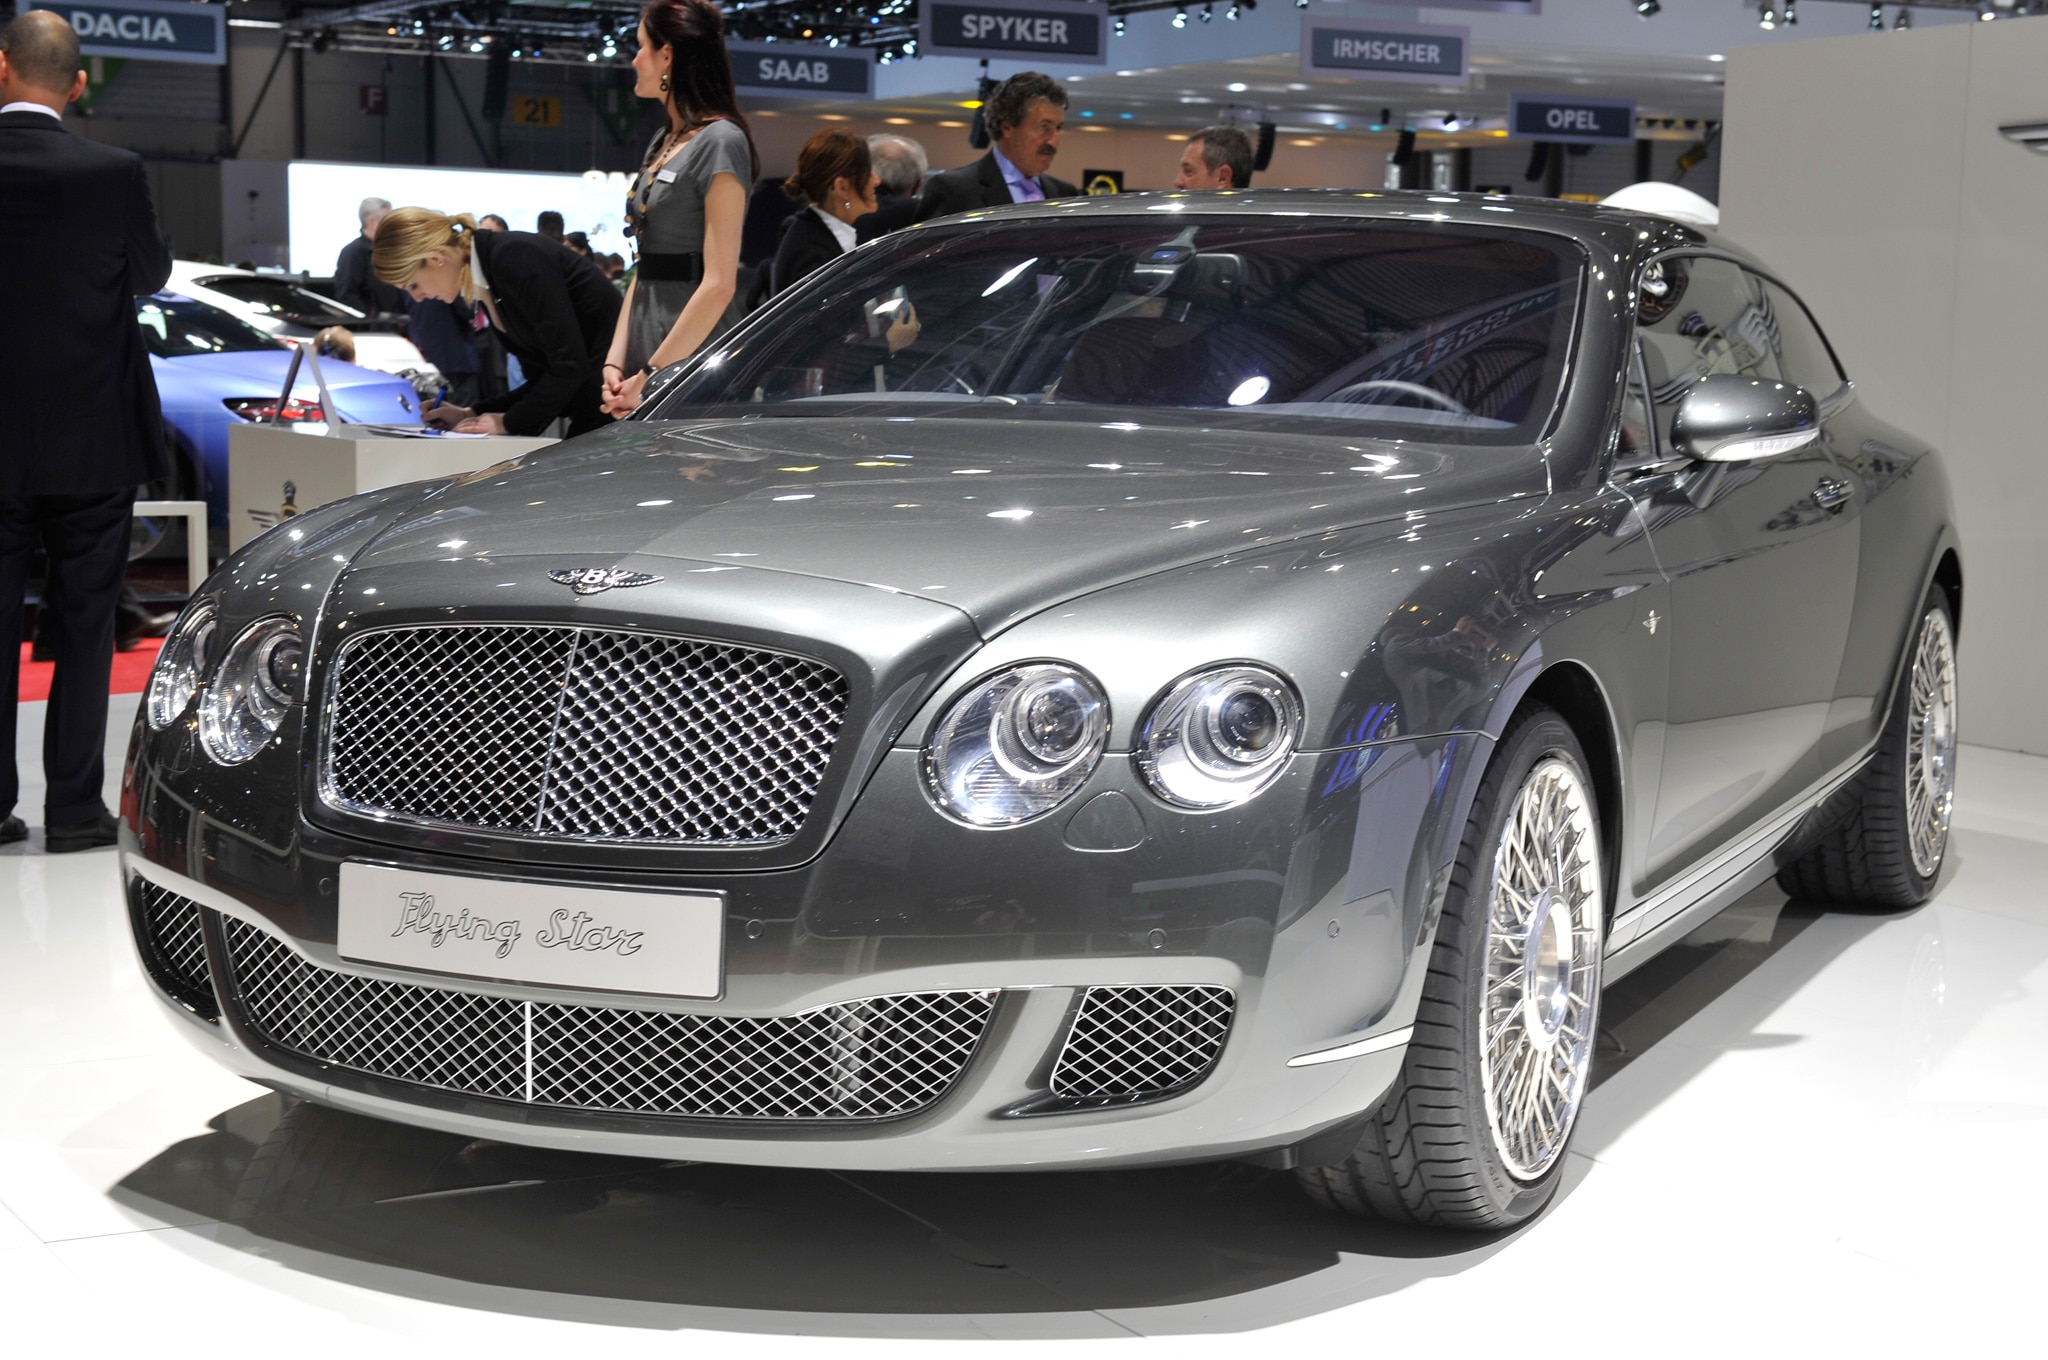 Five Coolest Cars Powered By Volkswagen W 12 Engines Automobile Bentley W12 Engine Diagram Show More